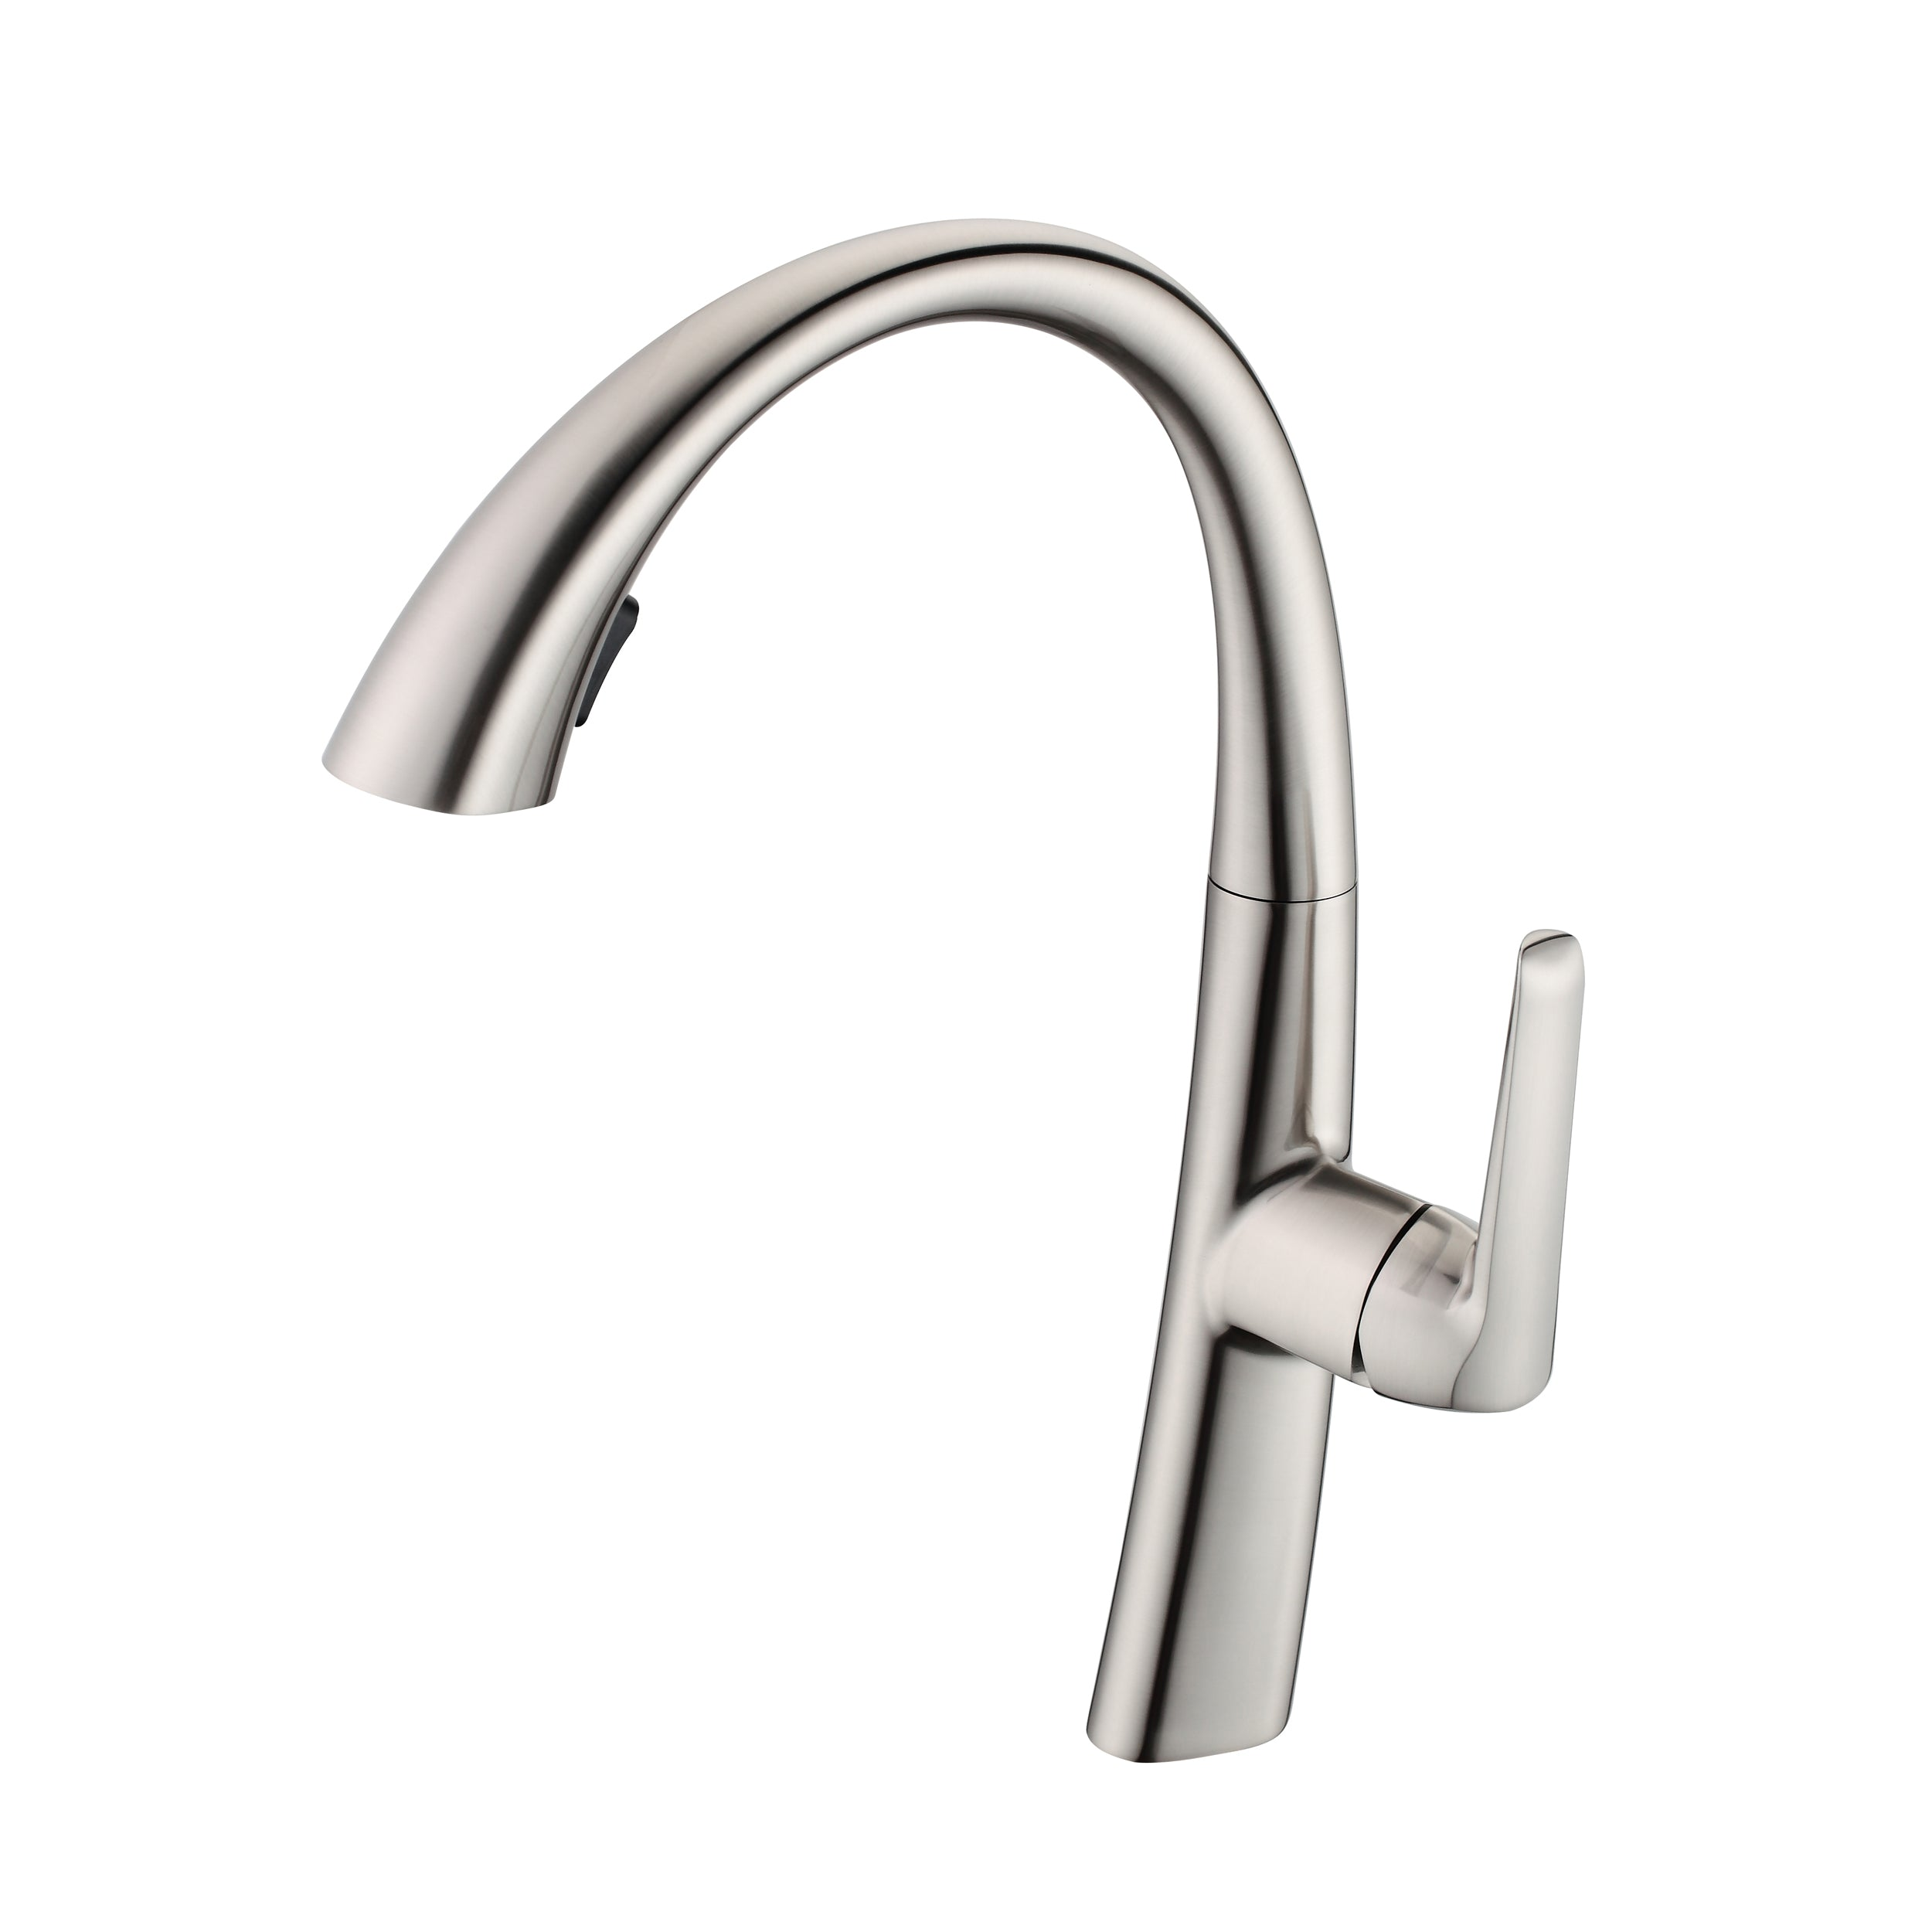 BAI 0659 Kitchen Faucet / Single Handle / Pull Down Hand Spray ...